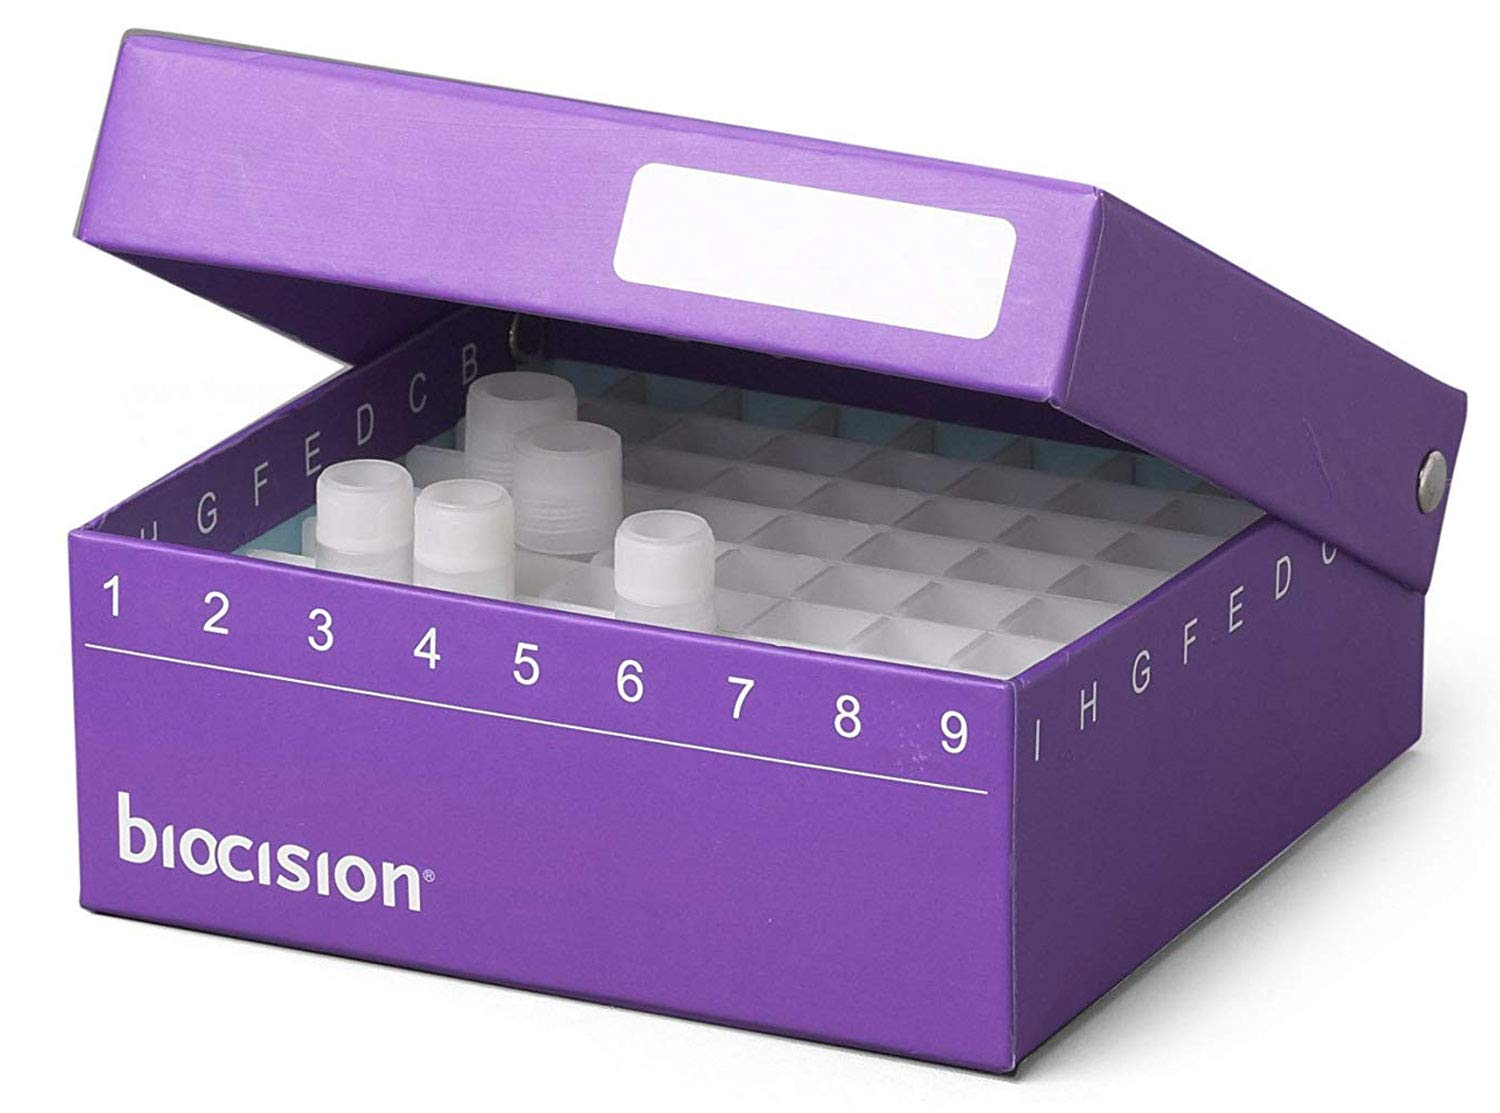 Biocision Hinged CryoBox Challenge Max 89% OFF the lowest price of Japan Purple 5PK 81-Place